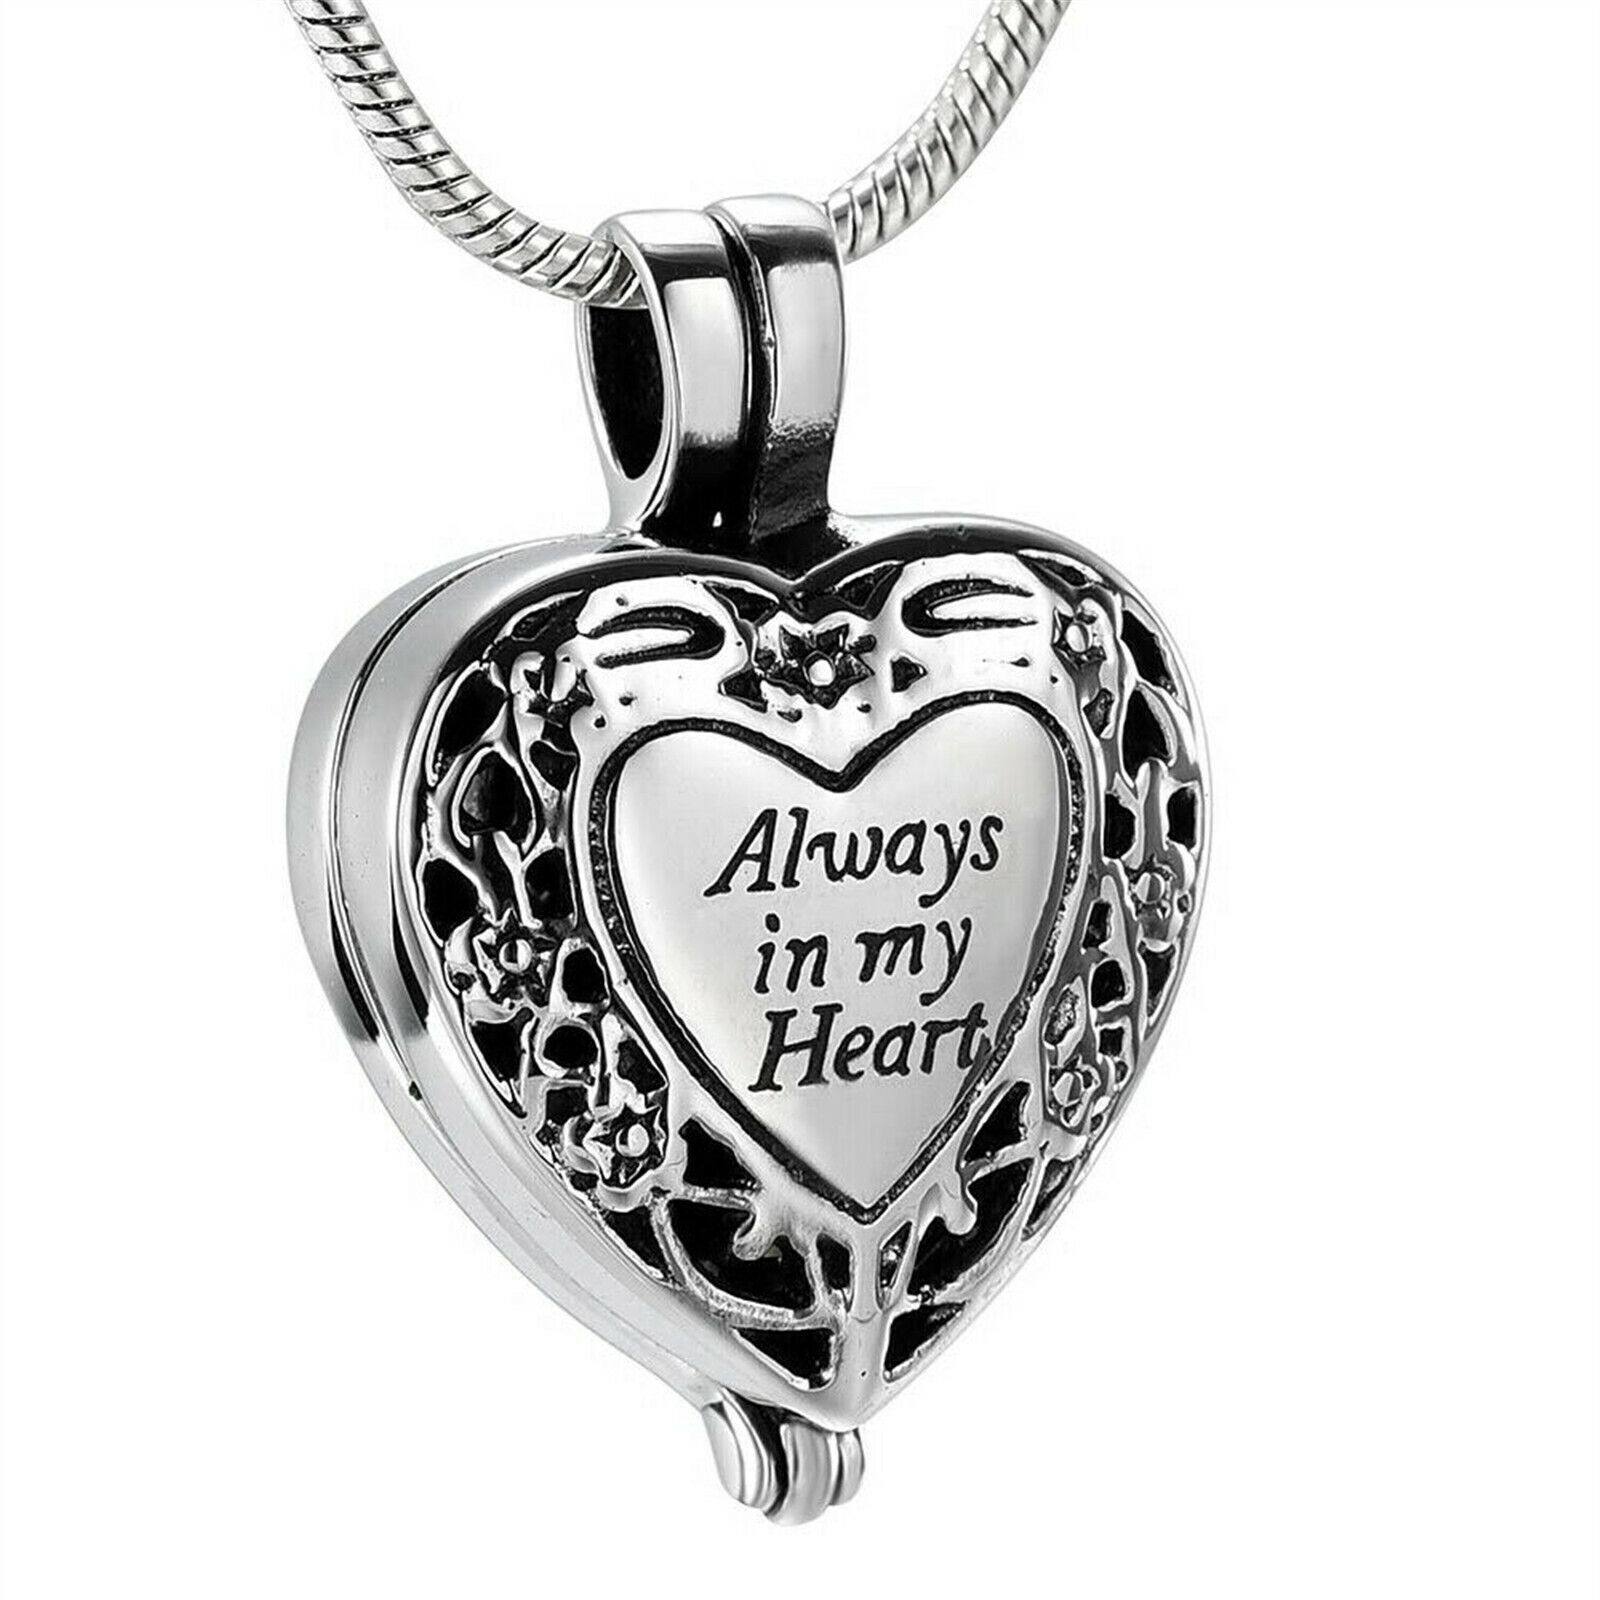 Jewellery - NEW Always in my Heart Locket Urn Necklace Jewelry Cremation Ashes With Tool